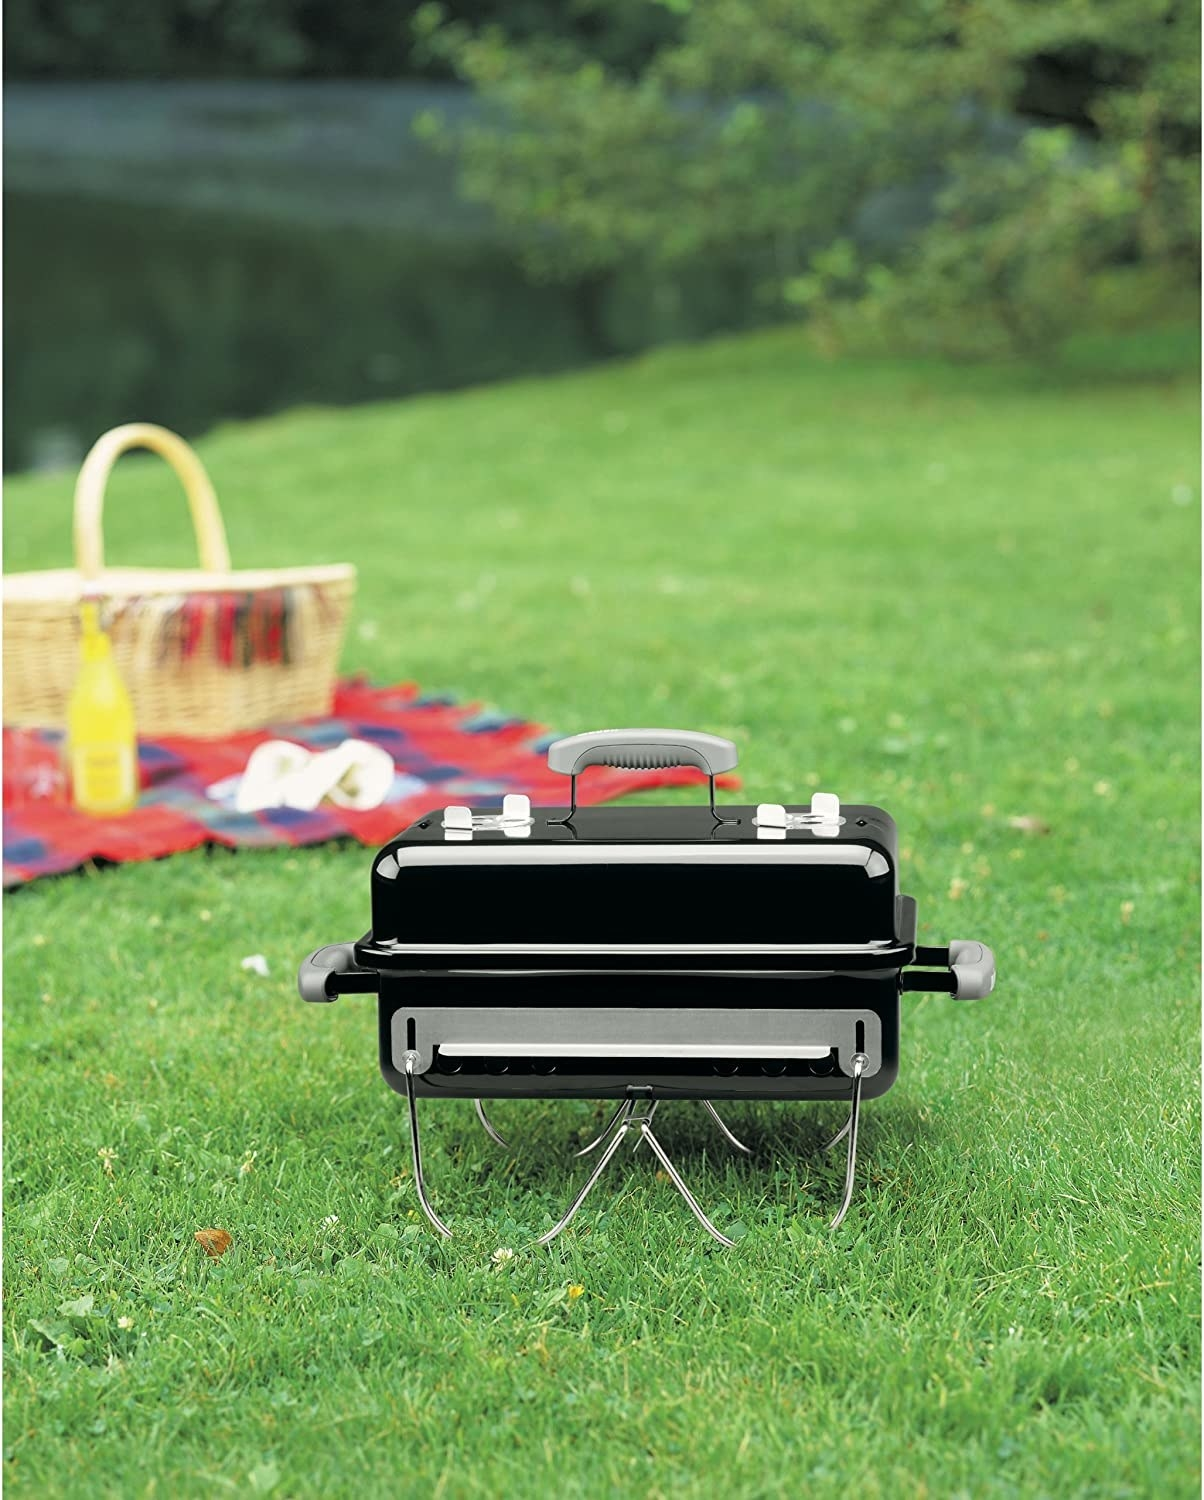 the grill on the grass